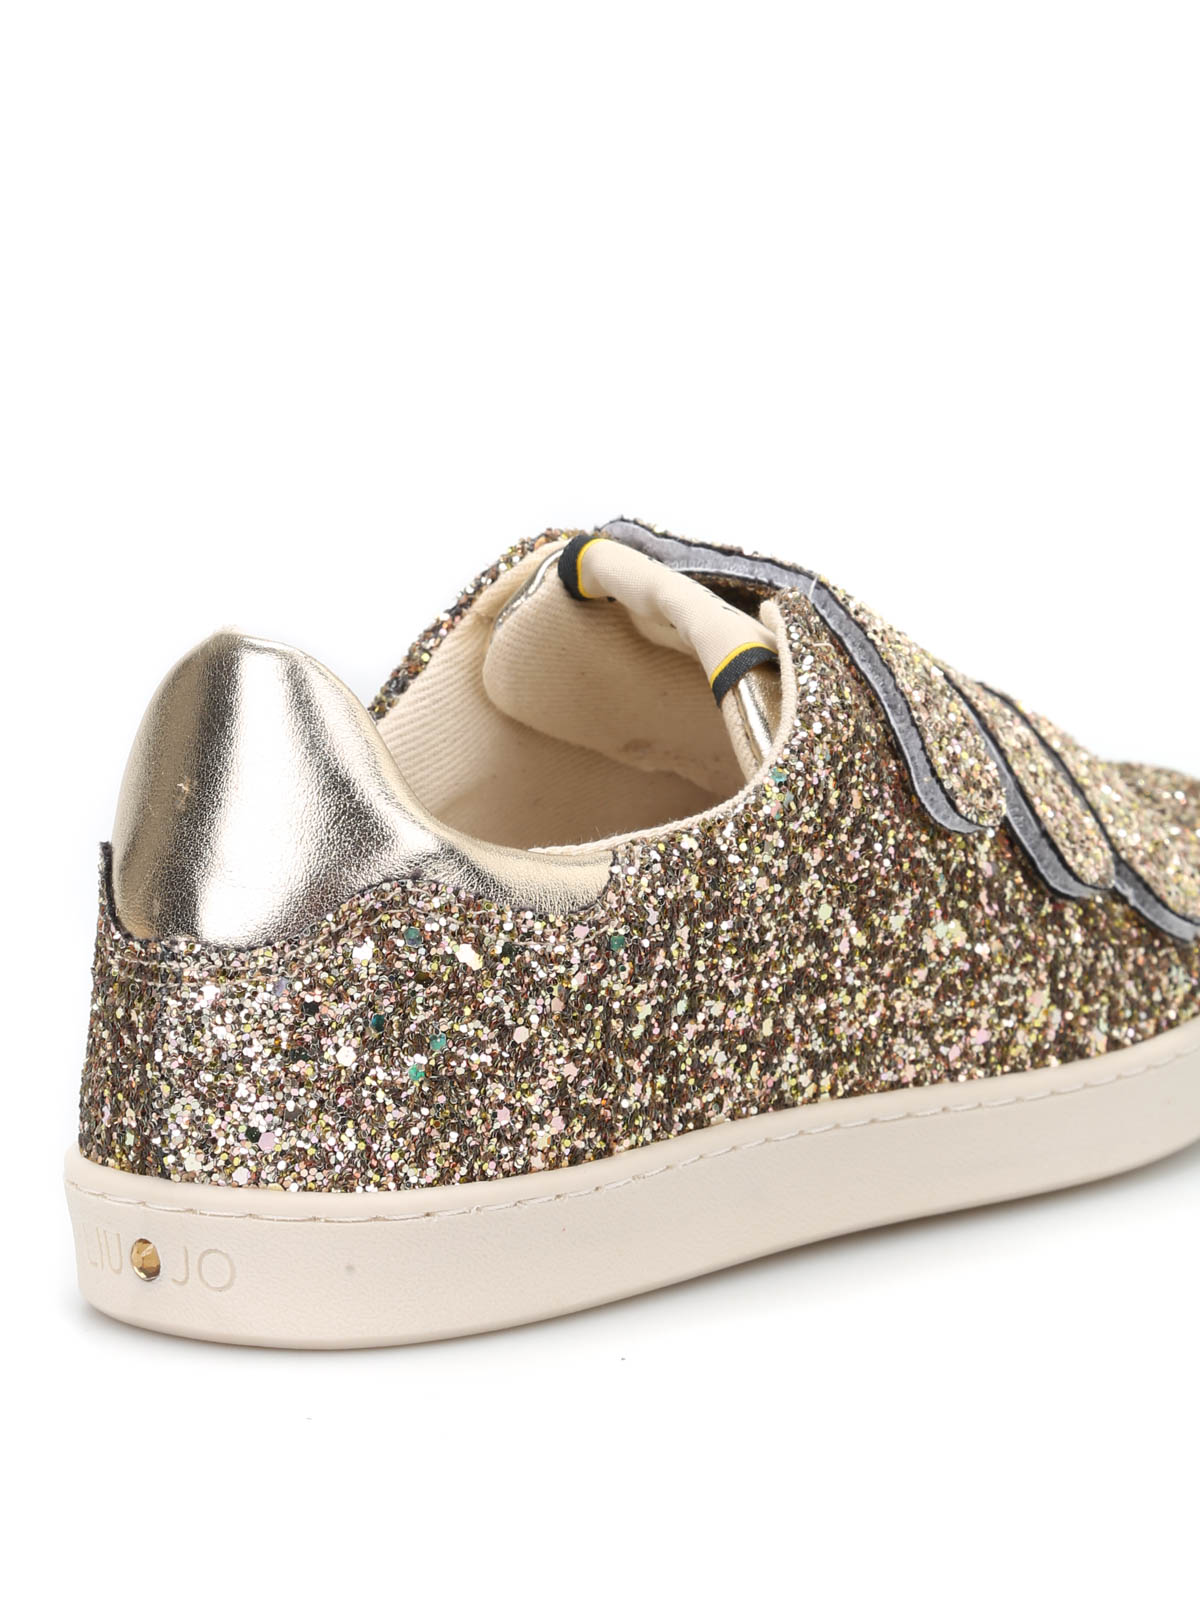 the latest 73397 fac5a Liu Jo - Celie sneakers - trainers - S16161T670100529 ...